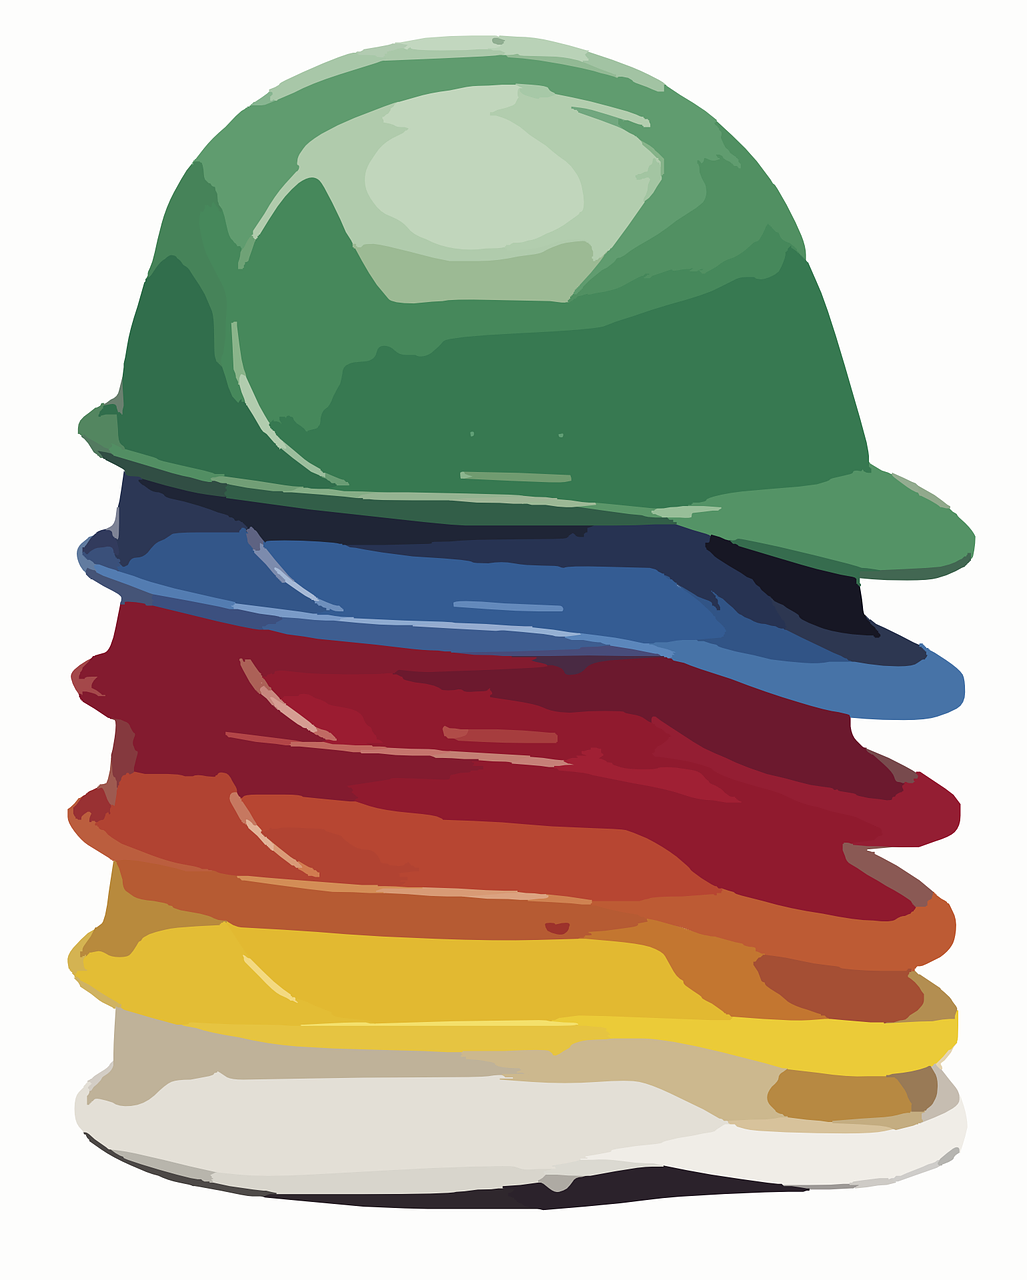 hard-hat-295414_1280.png